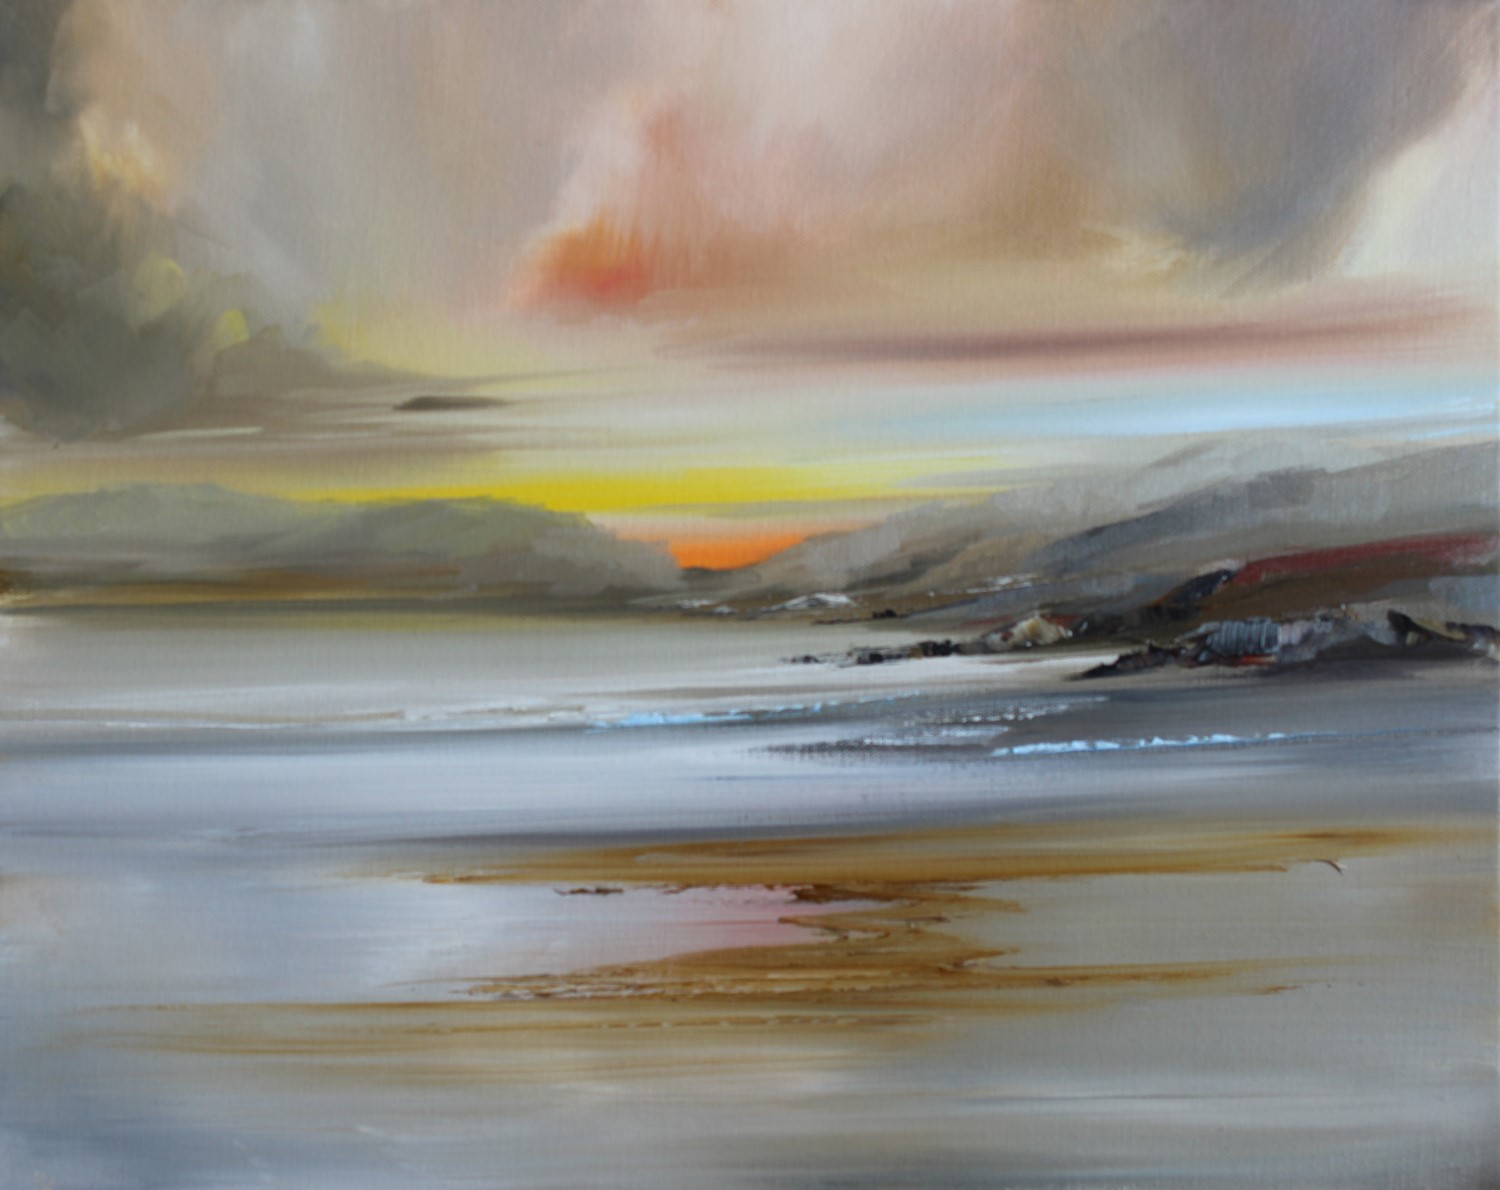 'Hills leading down to the shore' by artist Rosanne Barr